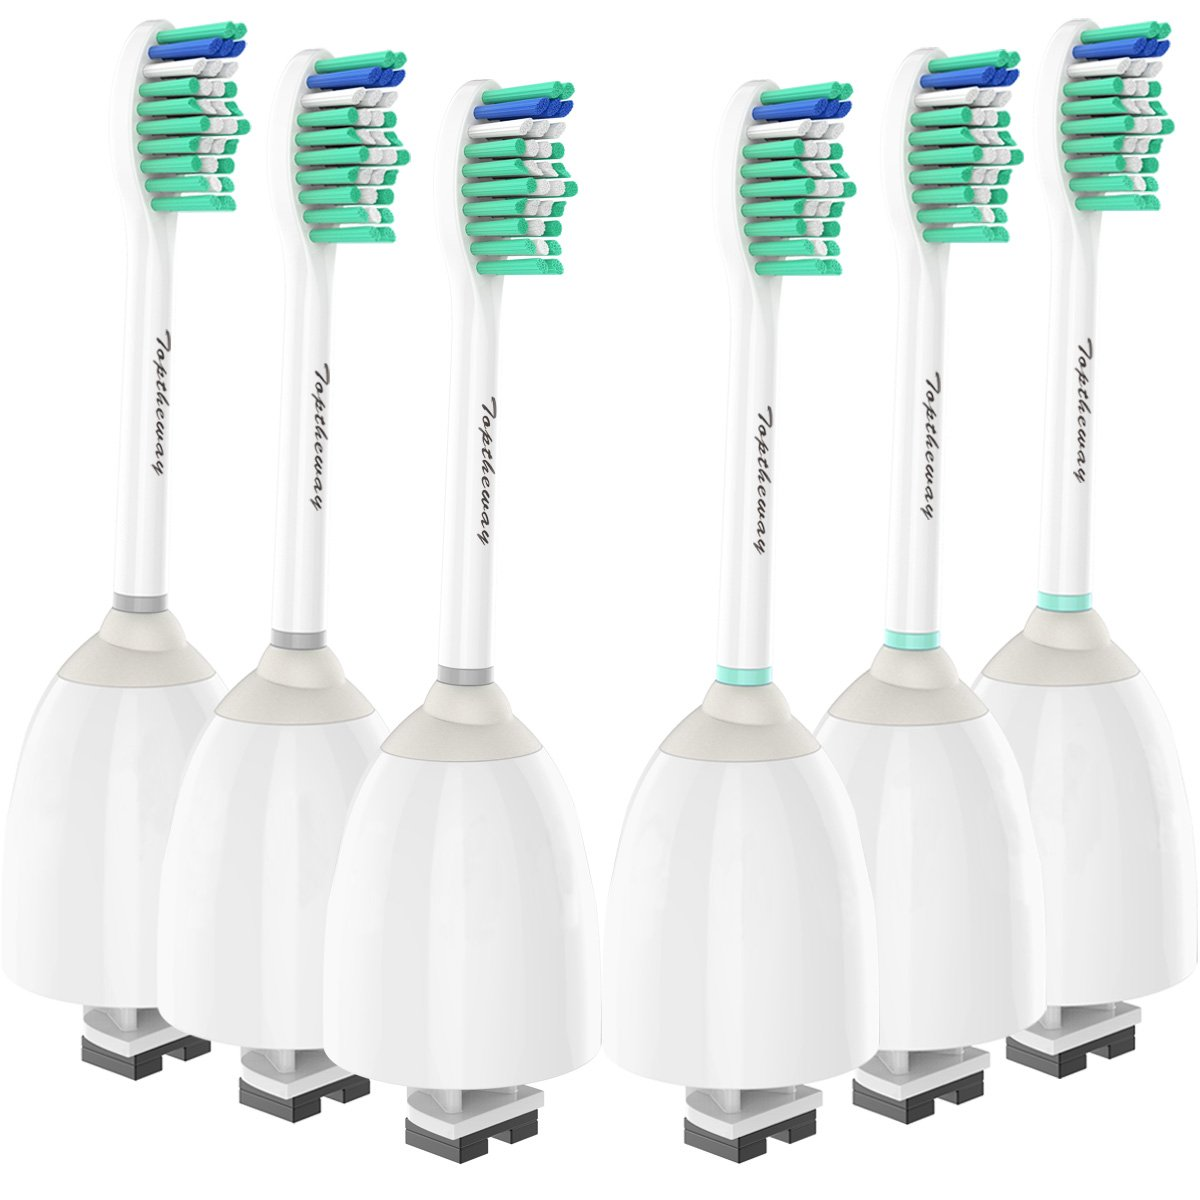 Replacement Brush Heads for Philips Sonicare E-Series Toothbrush HX7022/66, Fit Sonicare Essence, Xtreme, Elite, Advance and CleanCare Screw-On Philips Handles, 6 Pack by Toptheway by Toptheway (Image #1)